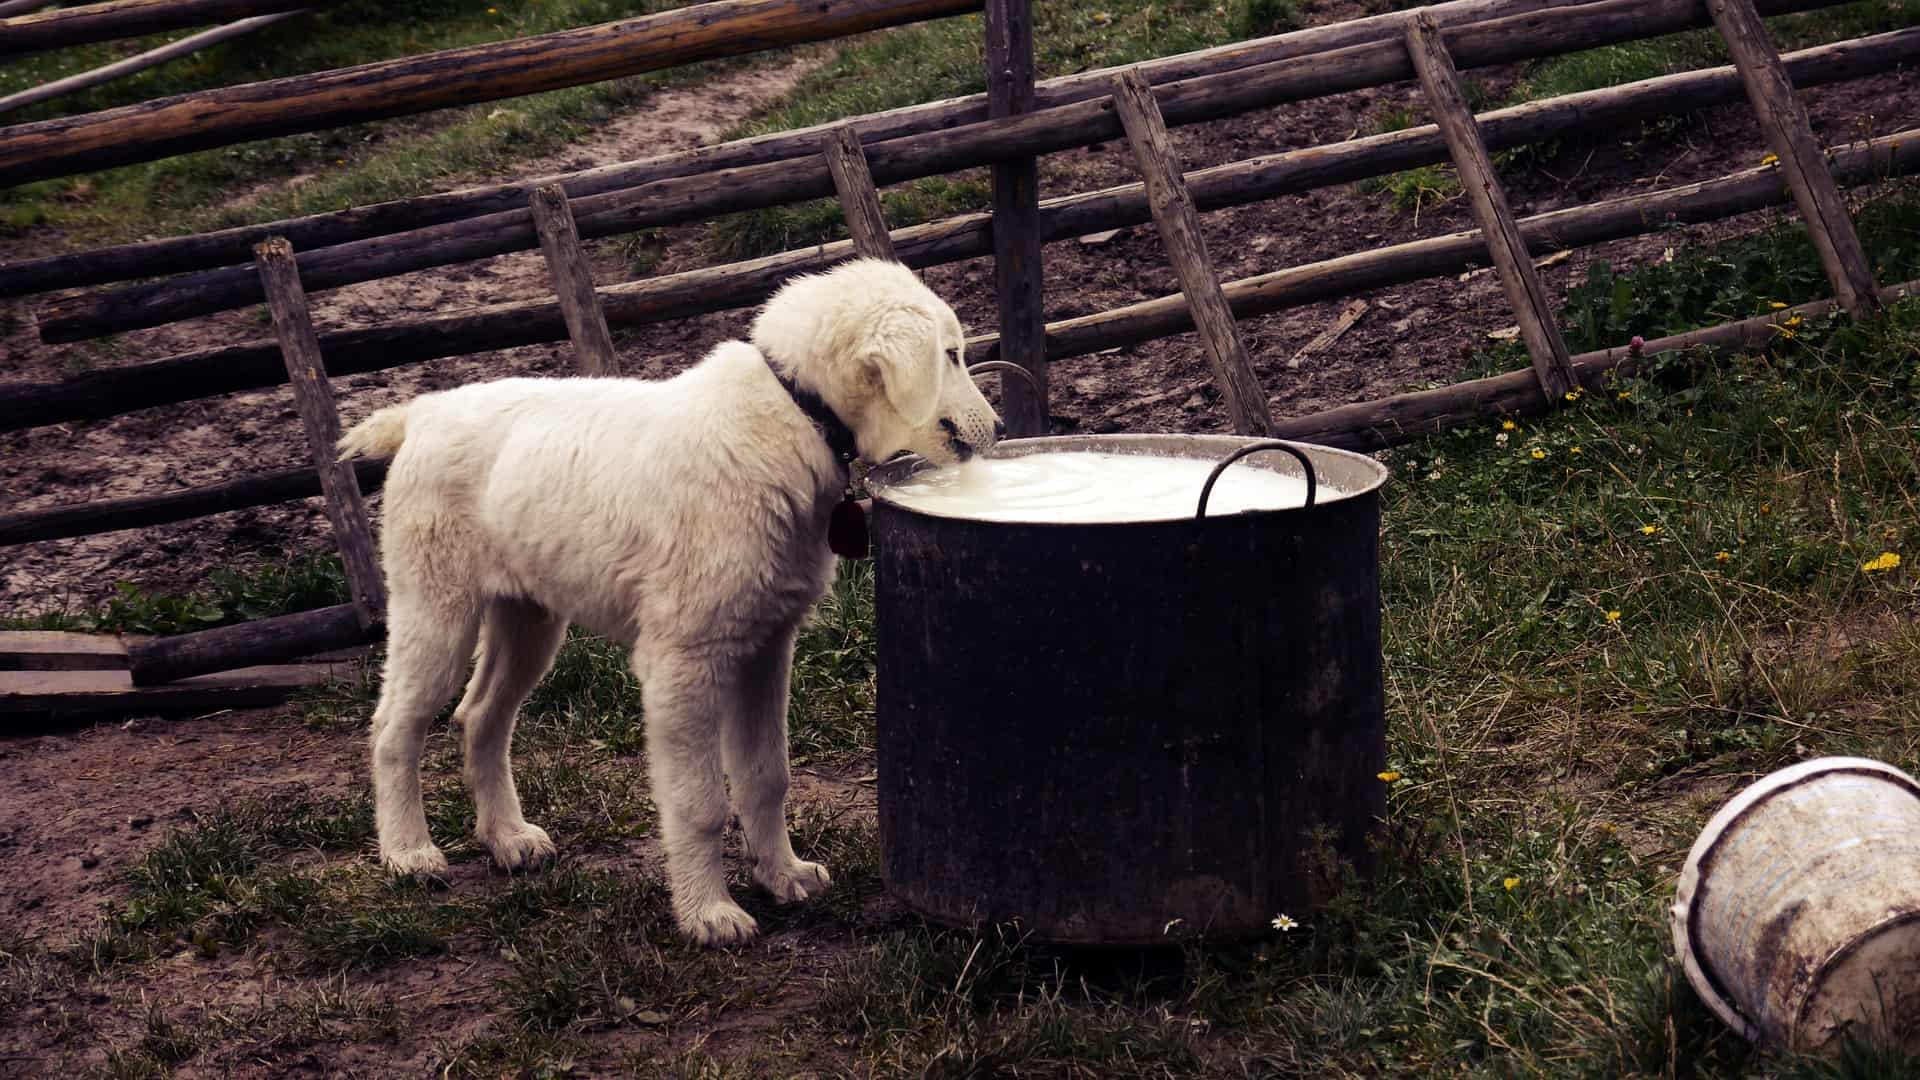 The Best Puppy Milk: Shopping Guide and Recommendations (09/21)